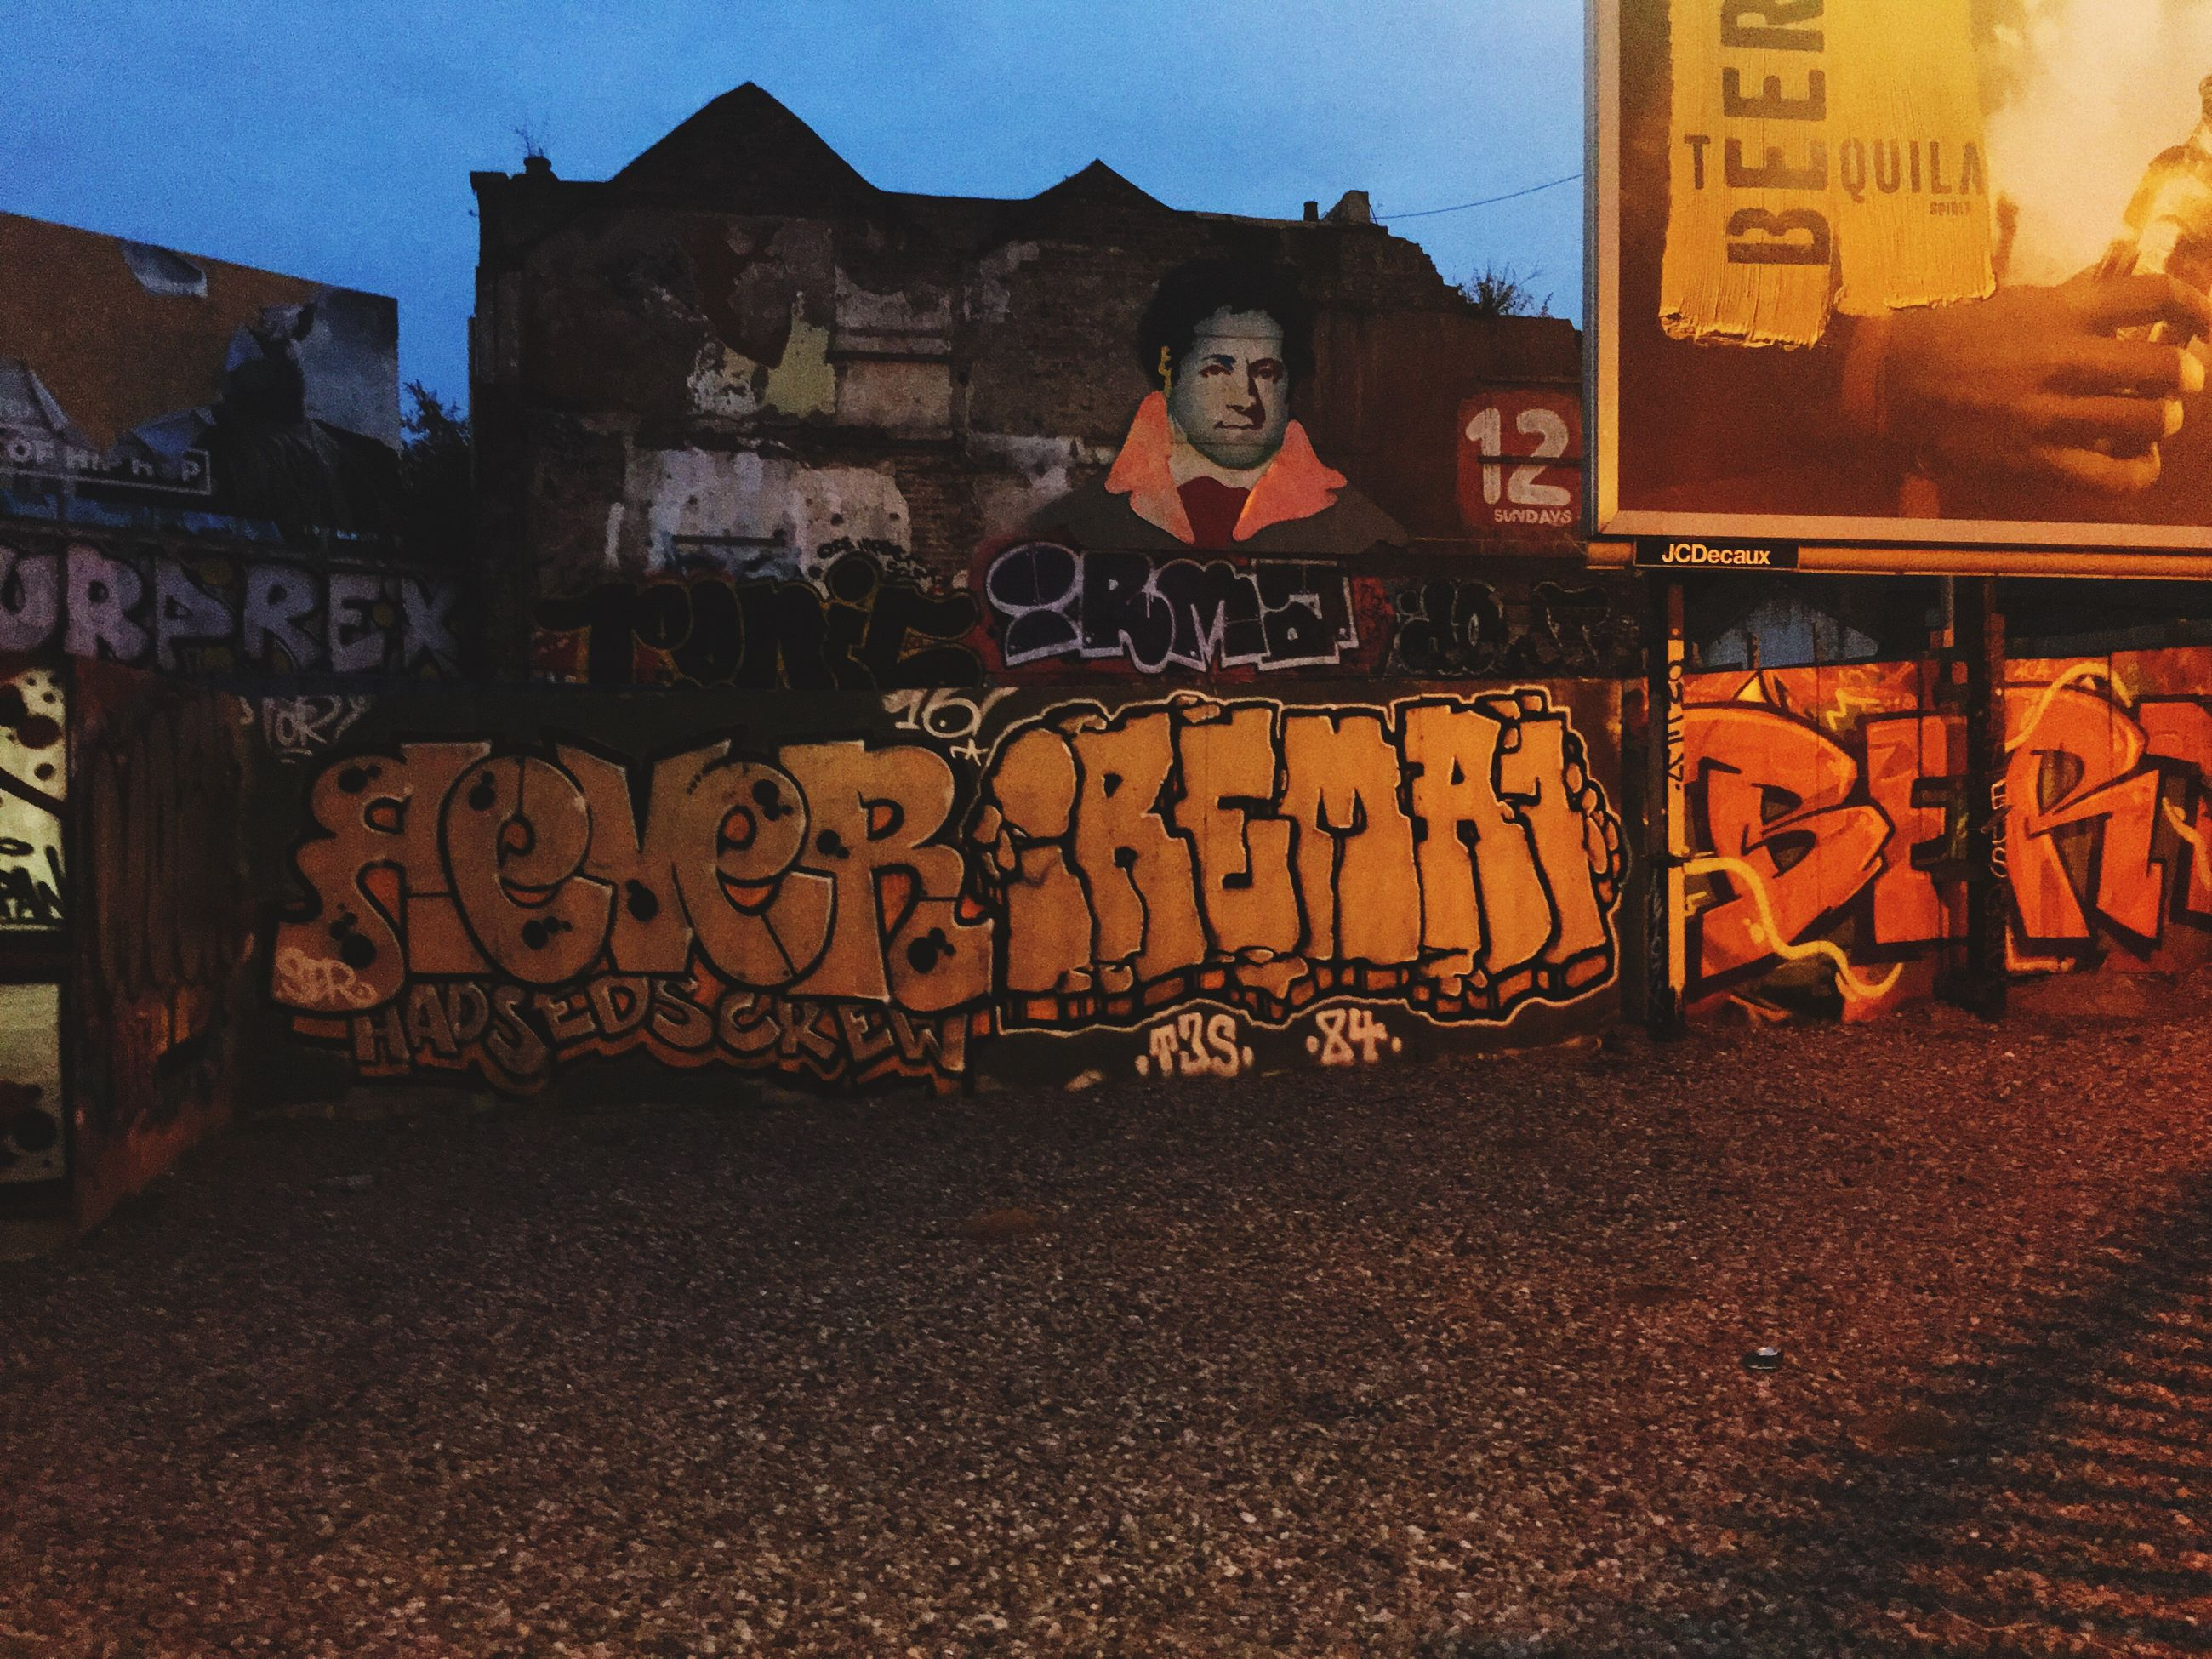 architecture, built structure, building exterior, graffiti, text, clear sky, western script, building, outdoors, creativity, sky, city life, no people